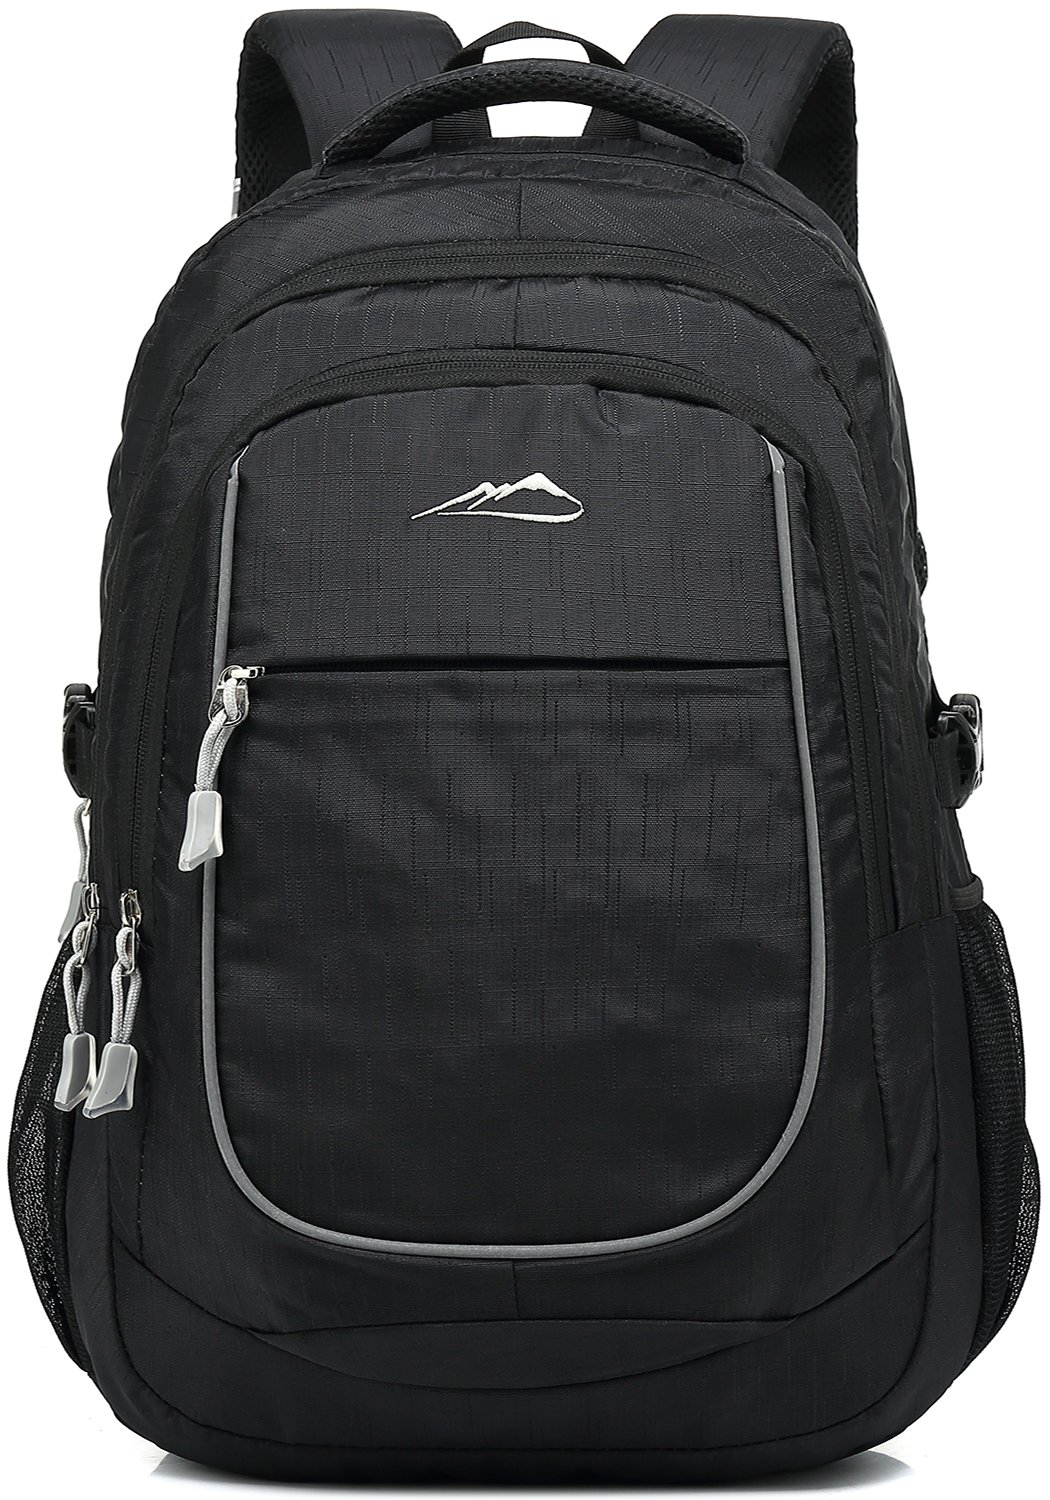 School Backpack For College Travel Hiking Fit Laptop Up to 15.6 inch Water Resistant (Black)